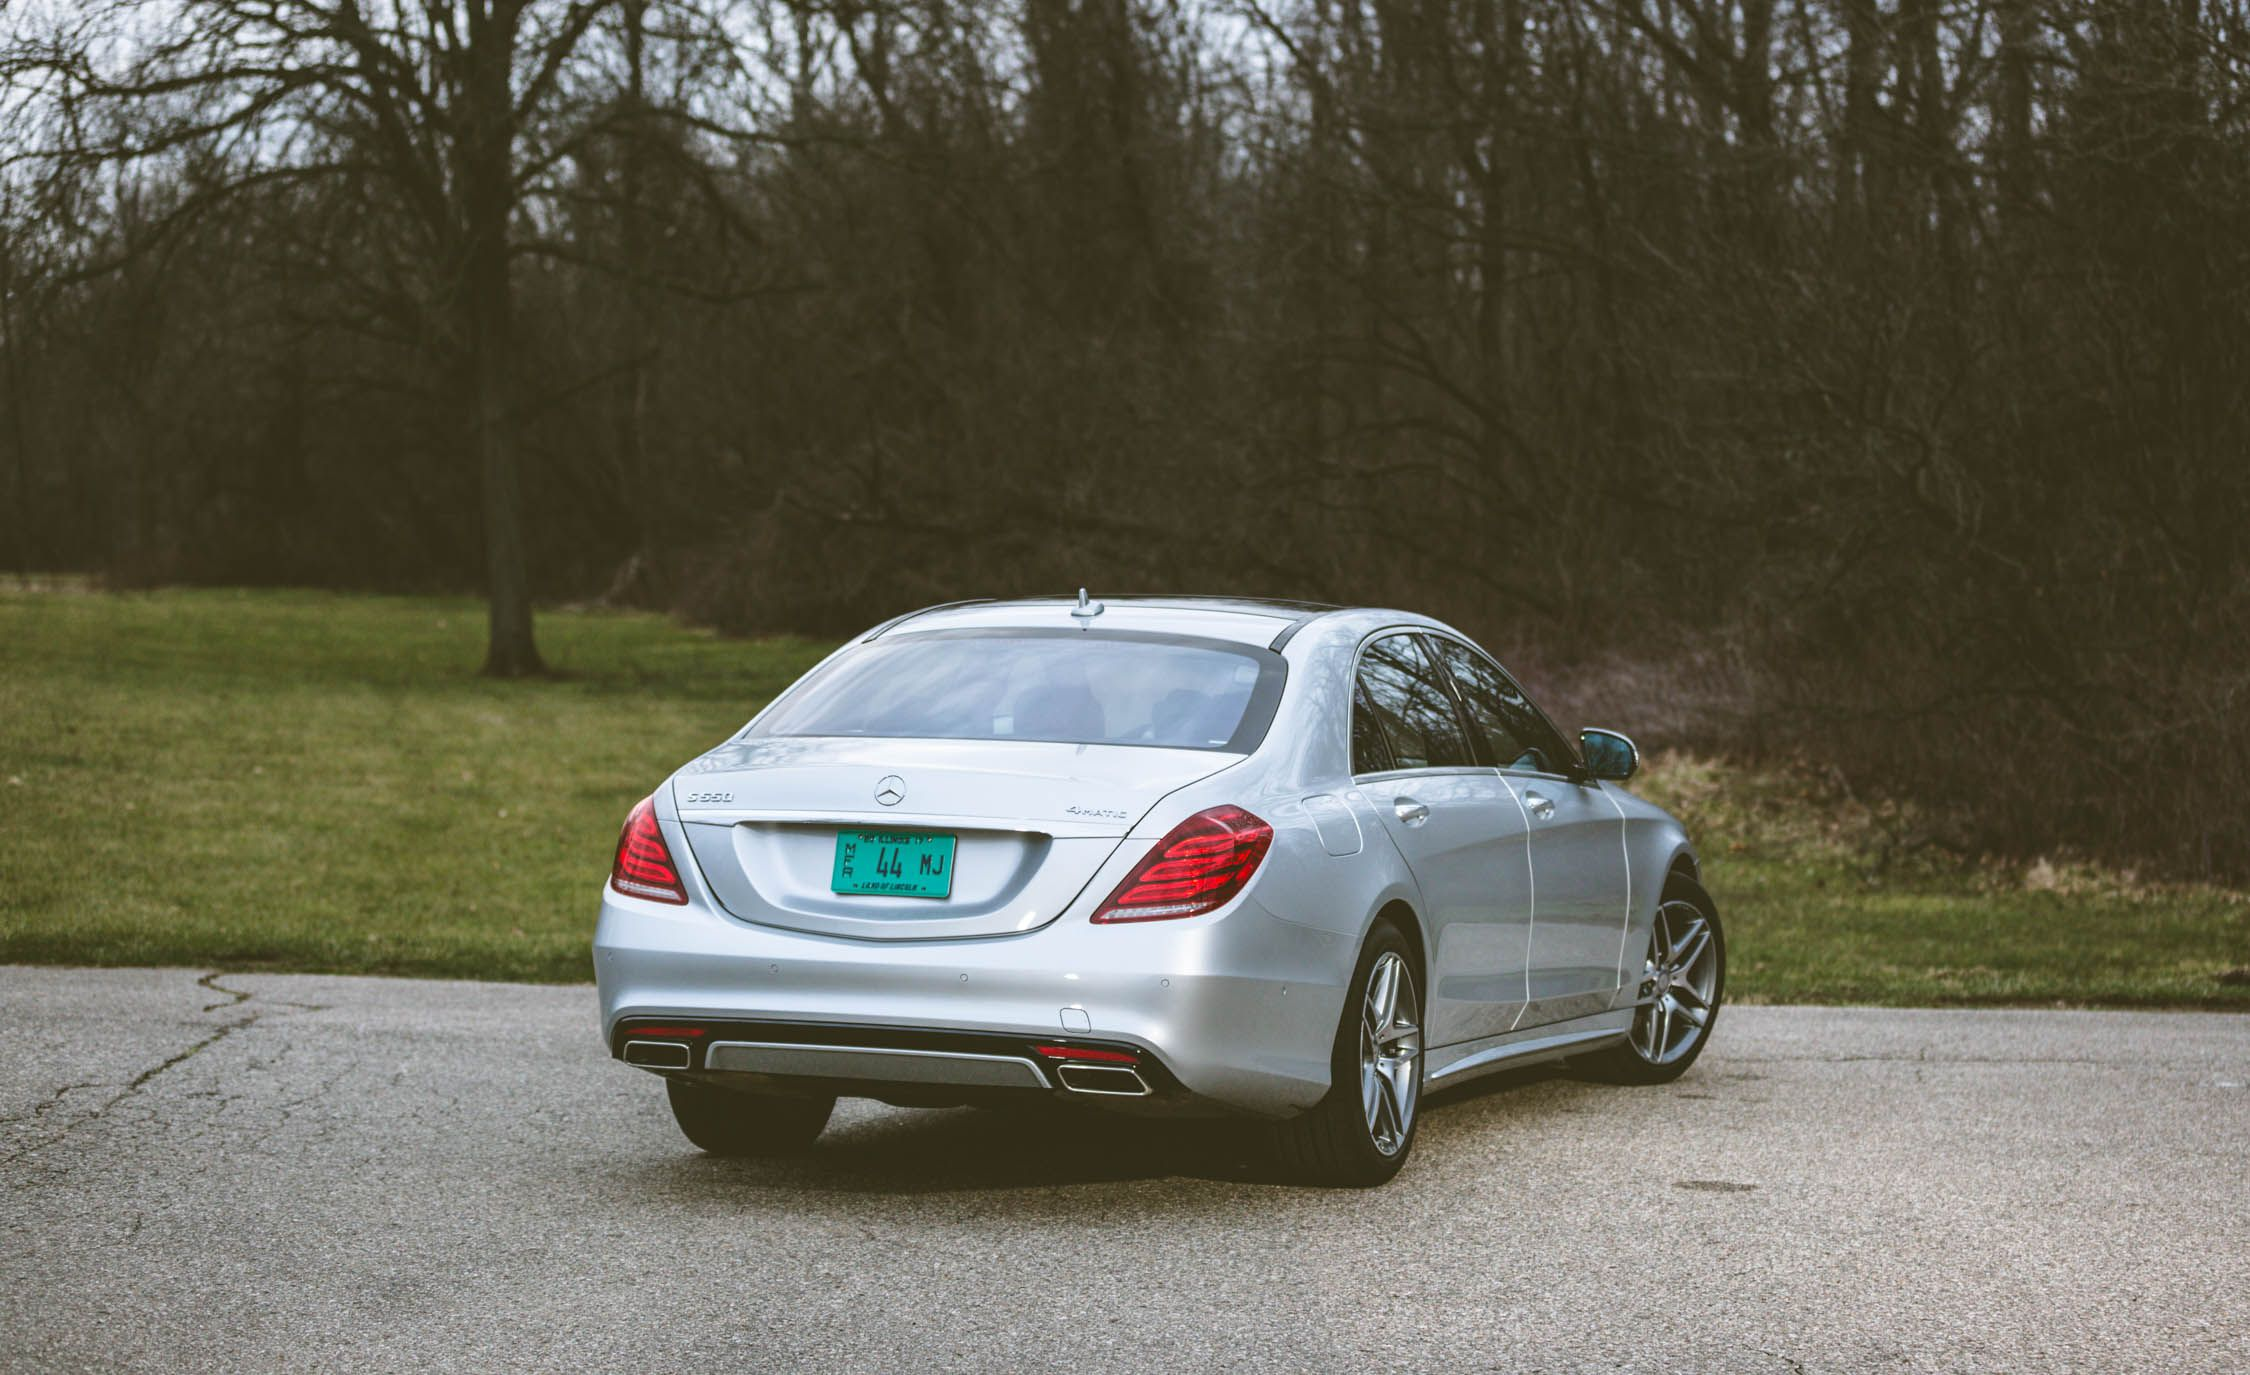 Mercedes-Benz E-Class: Storing and maintaining the current speed